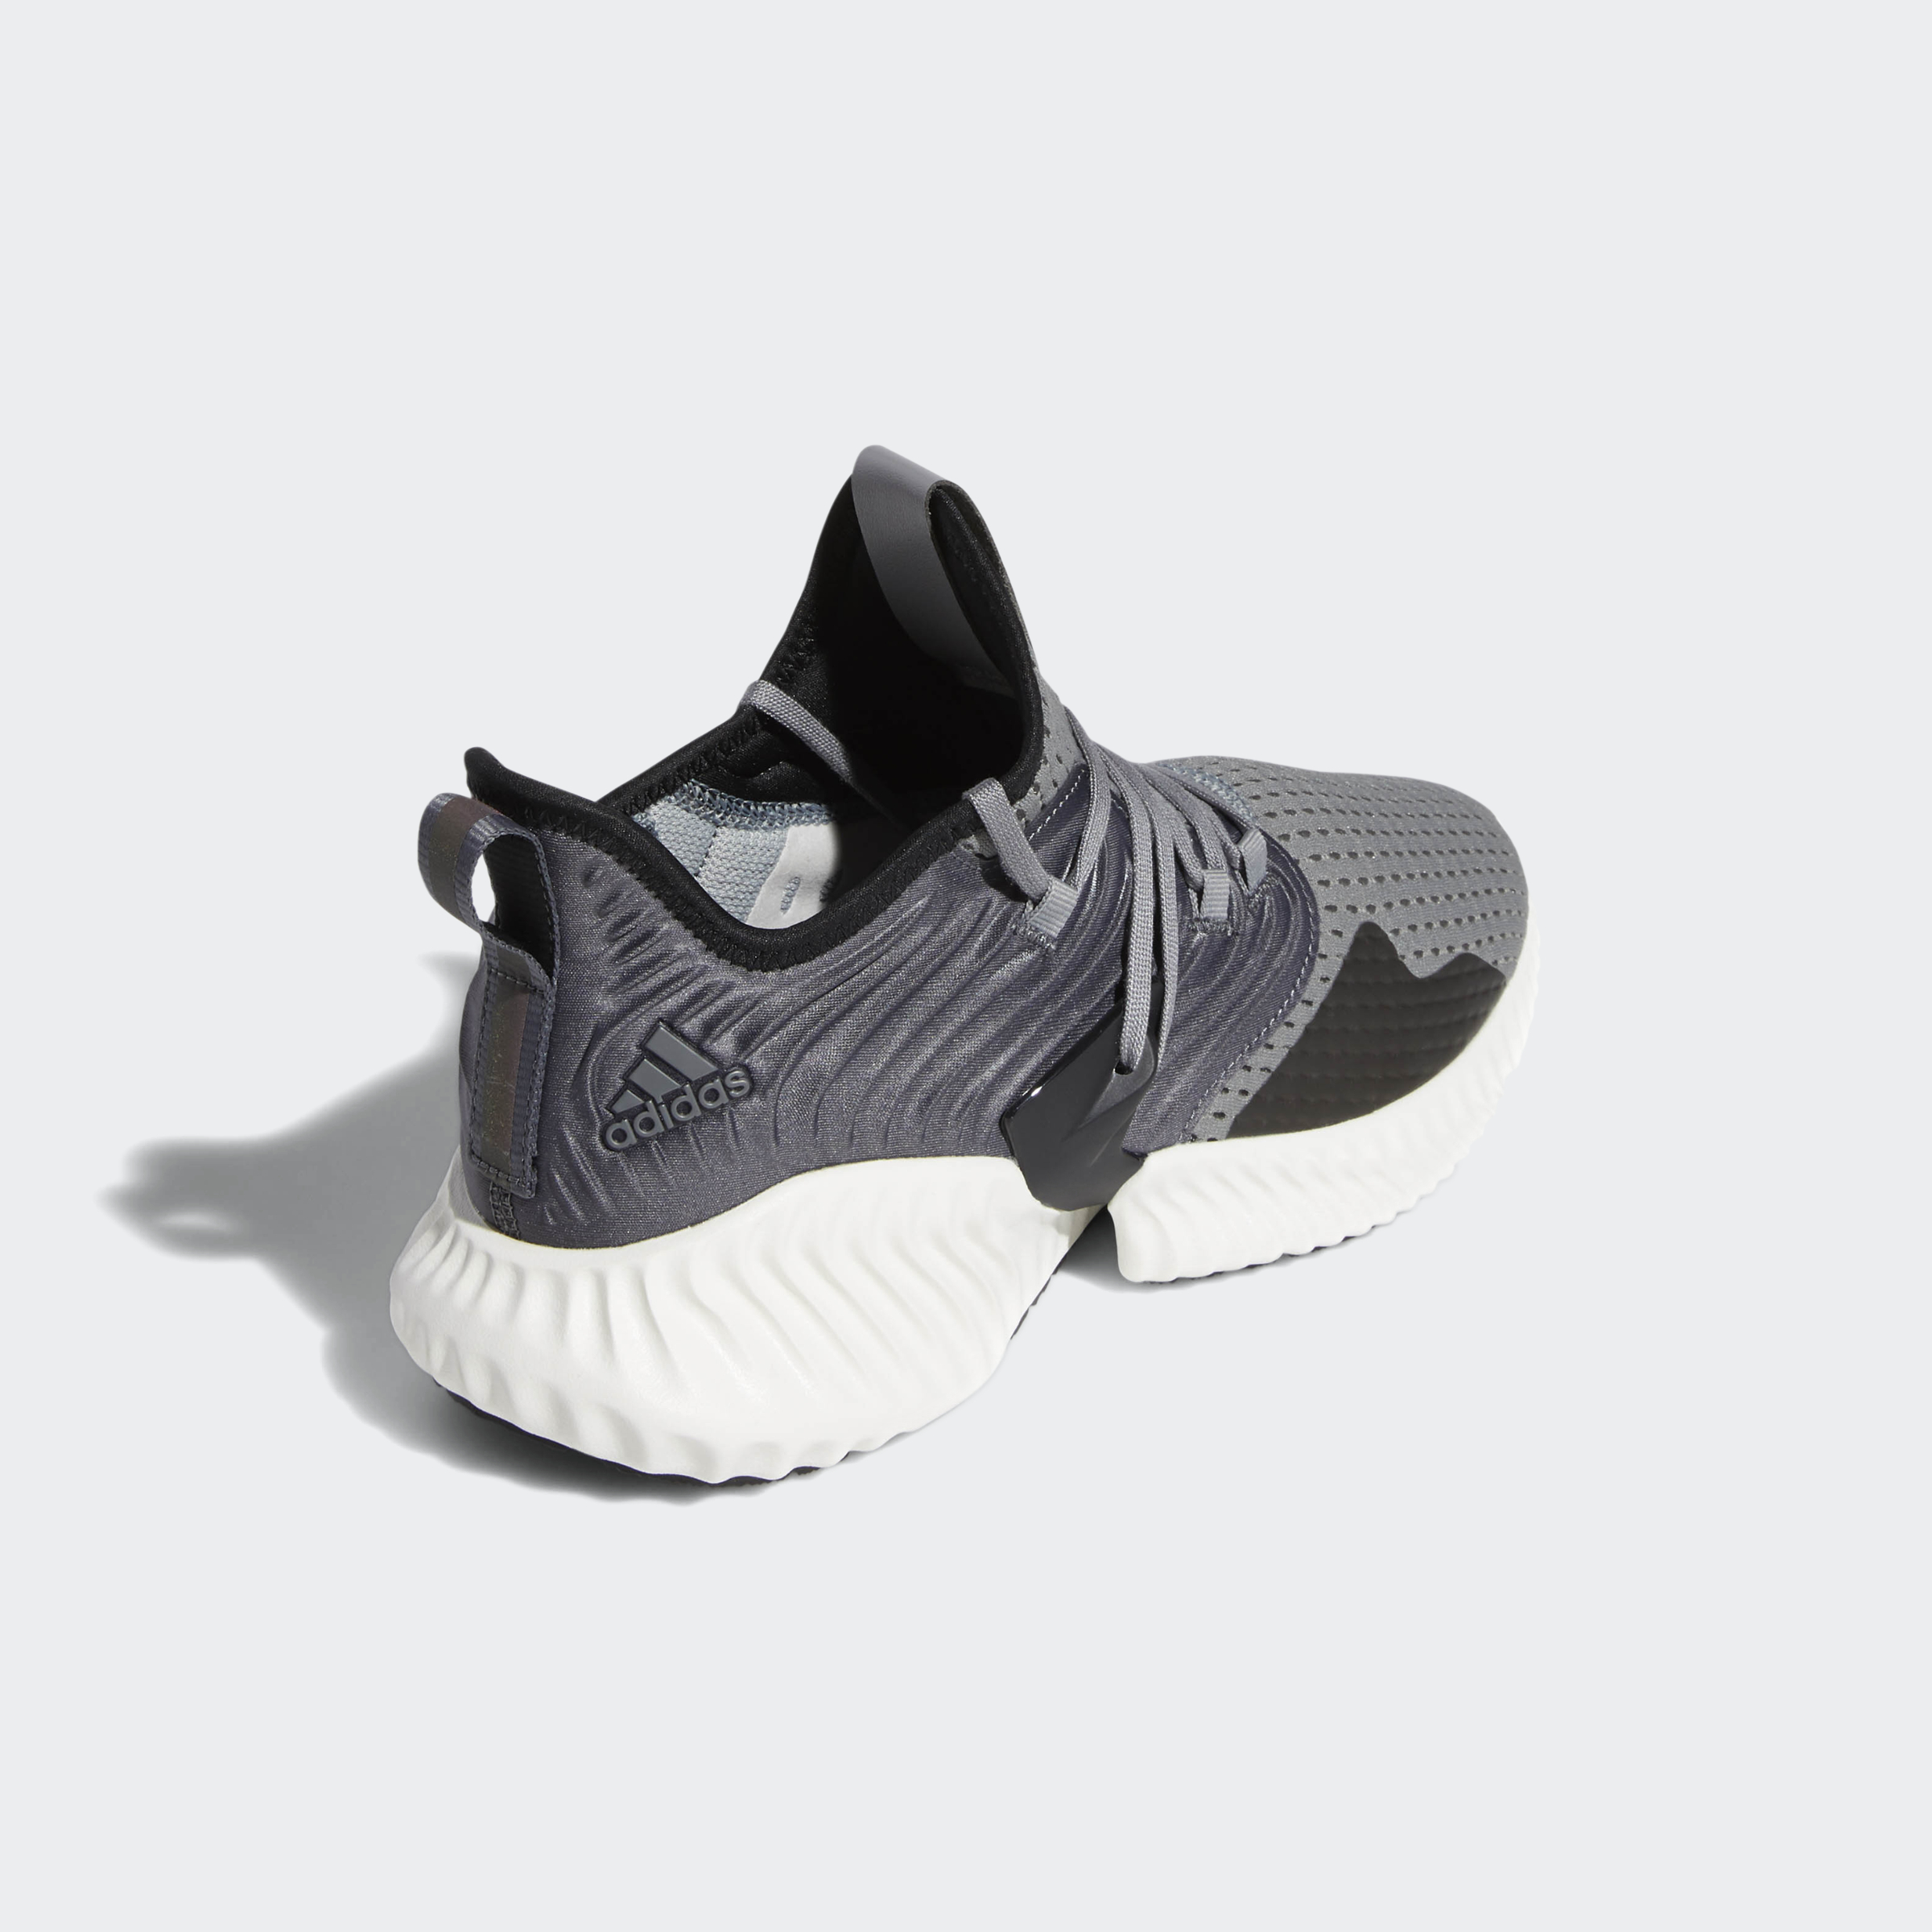 adidas-Alphabounce-Instinct-Clima-Shoes-Men-039-s-Athletic-amp-Sneakers thumbnail 14